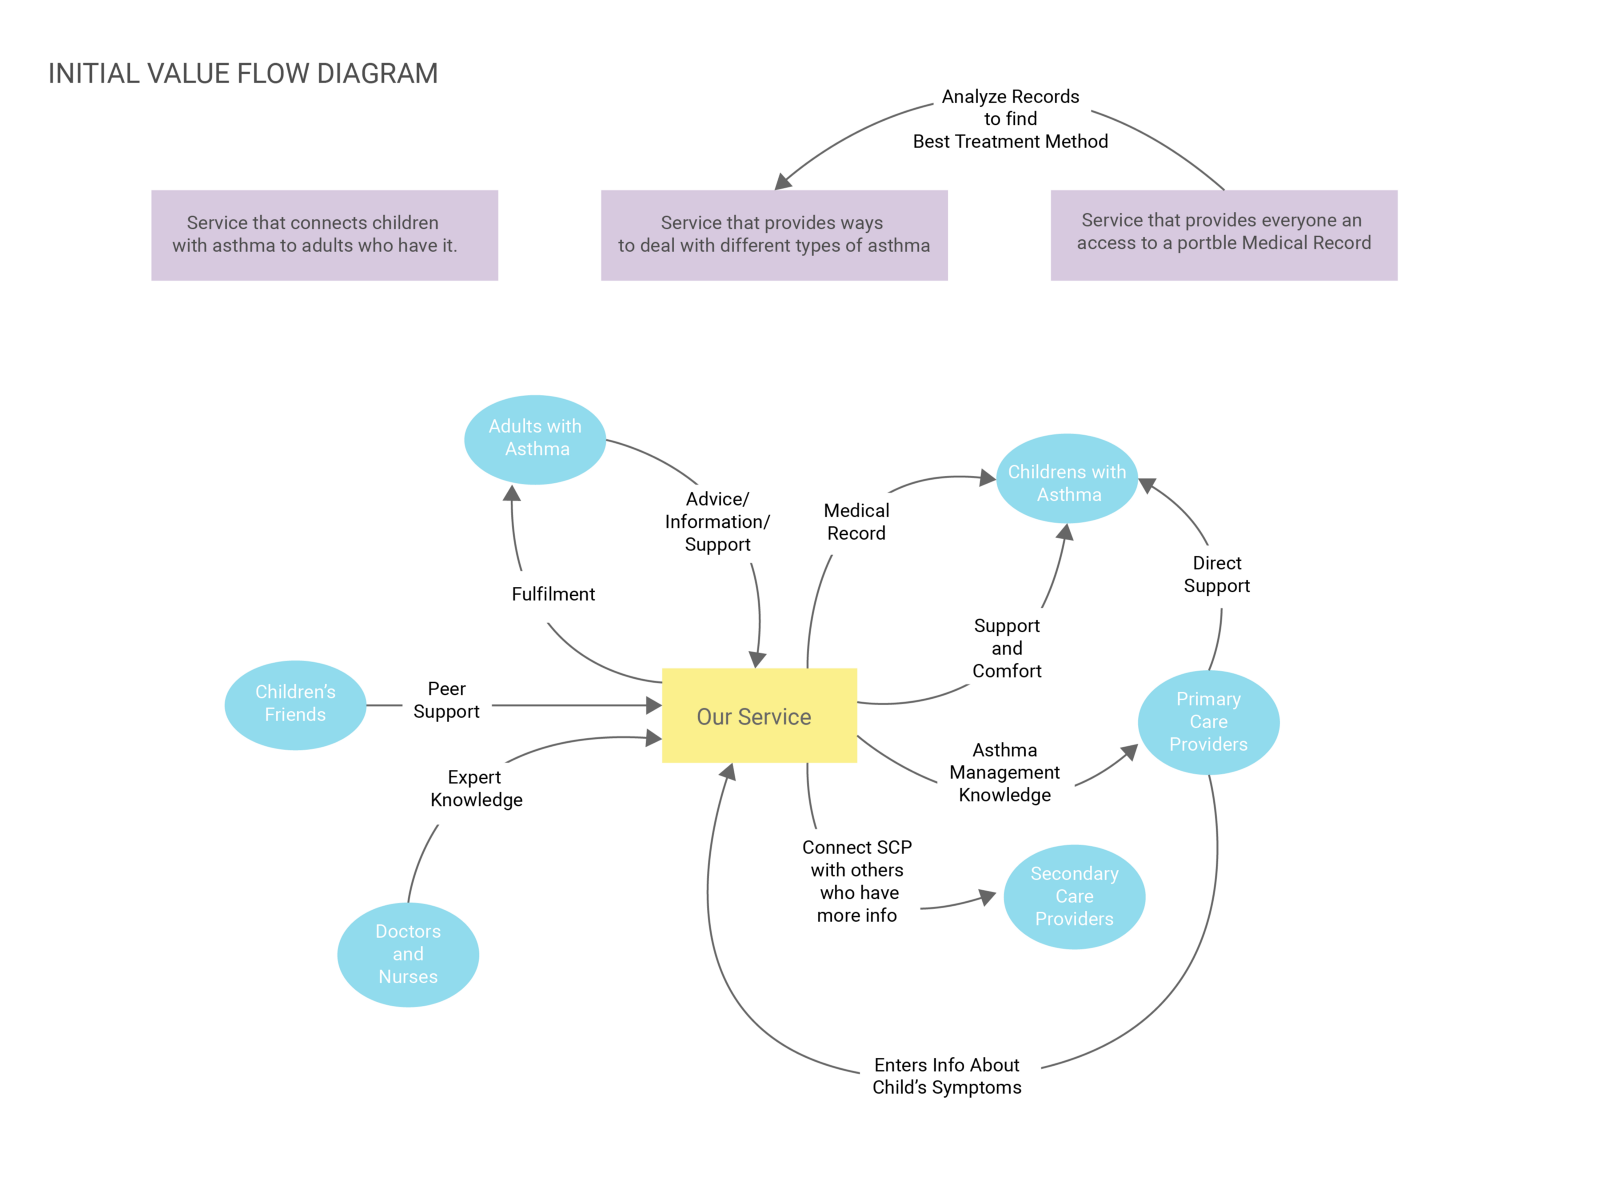 Initial value flow diagram designing for asthma medium refined view for our value flow and the elements involved ccuart Gallery